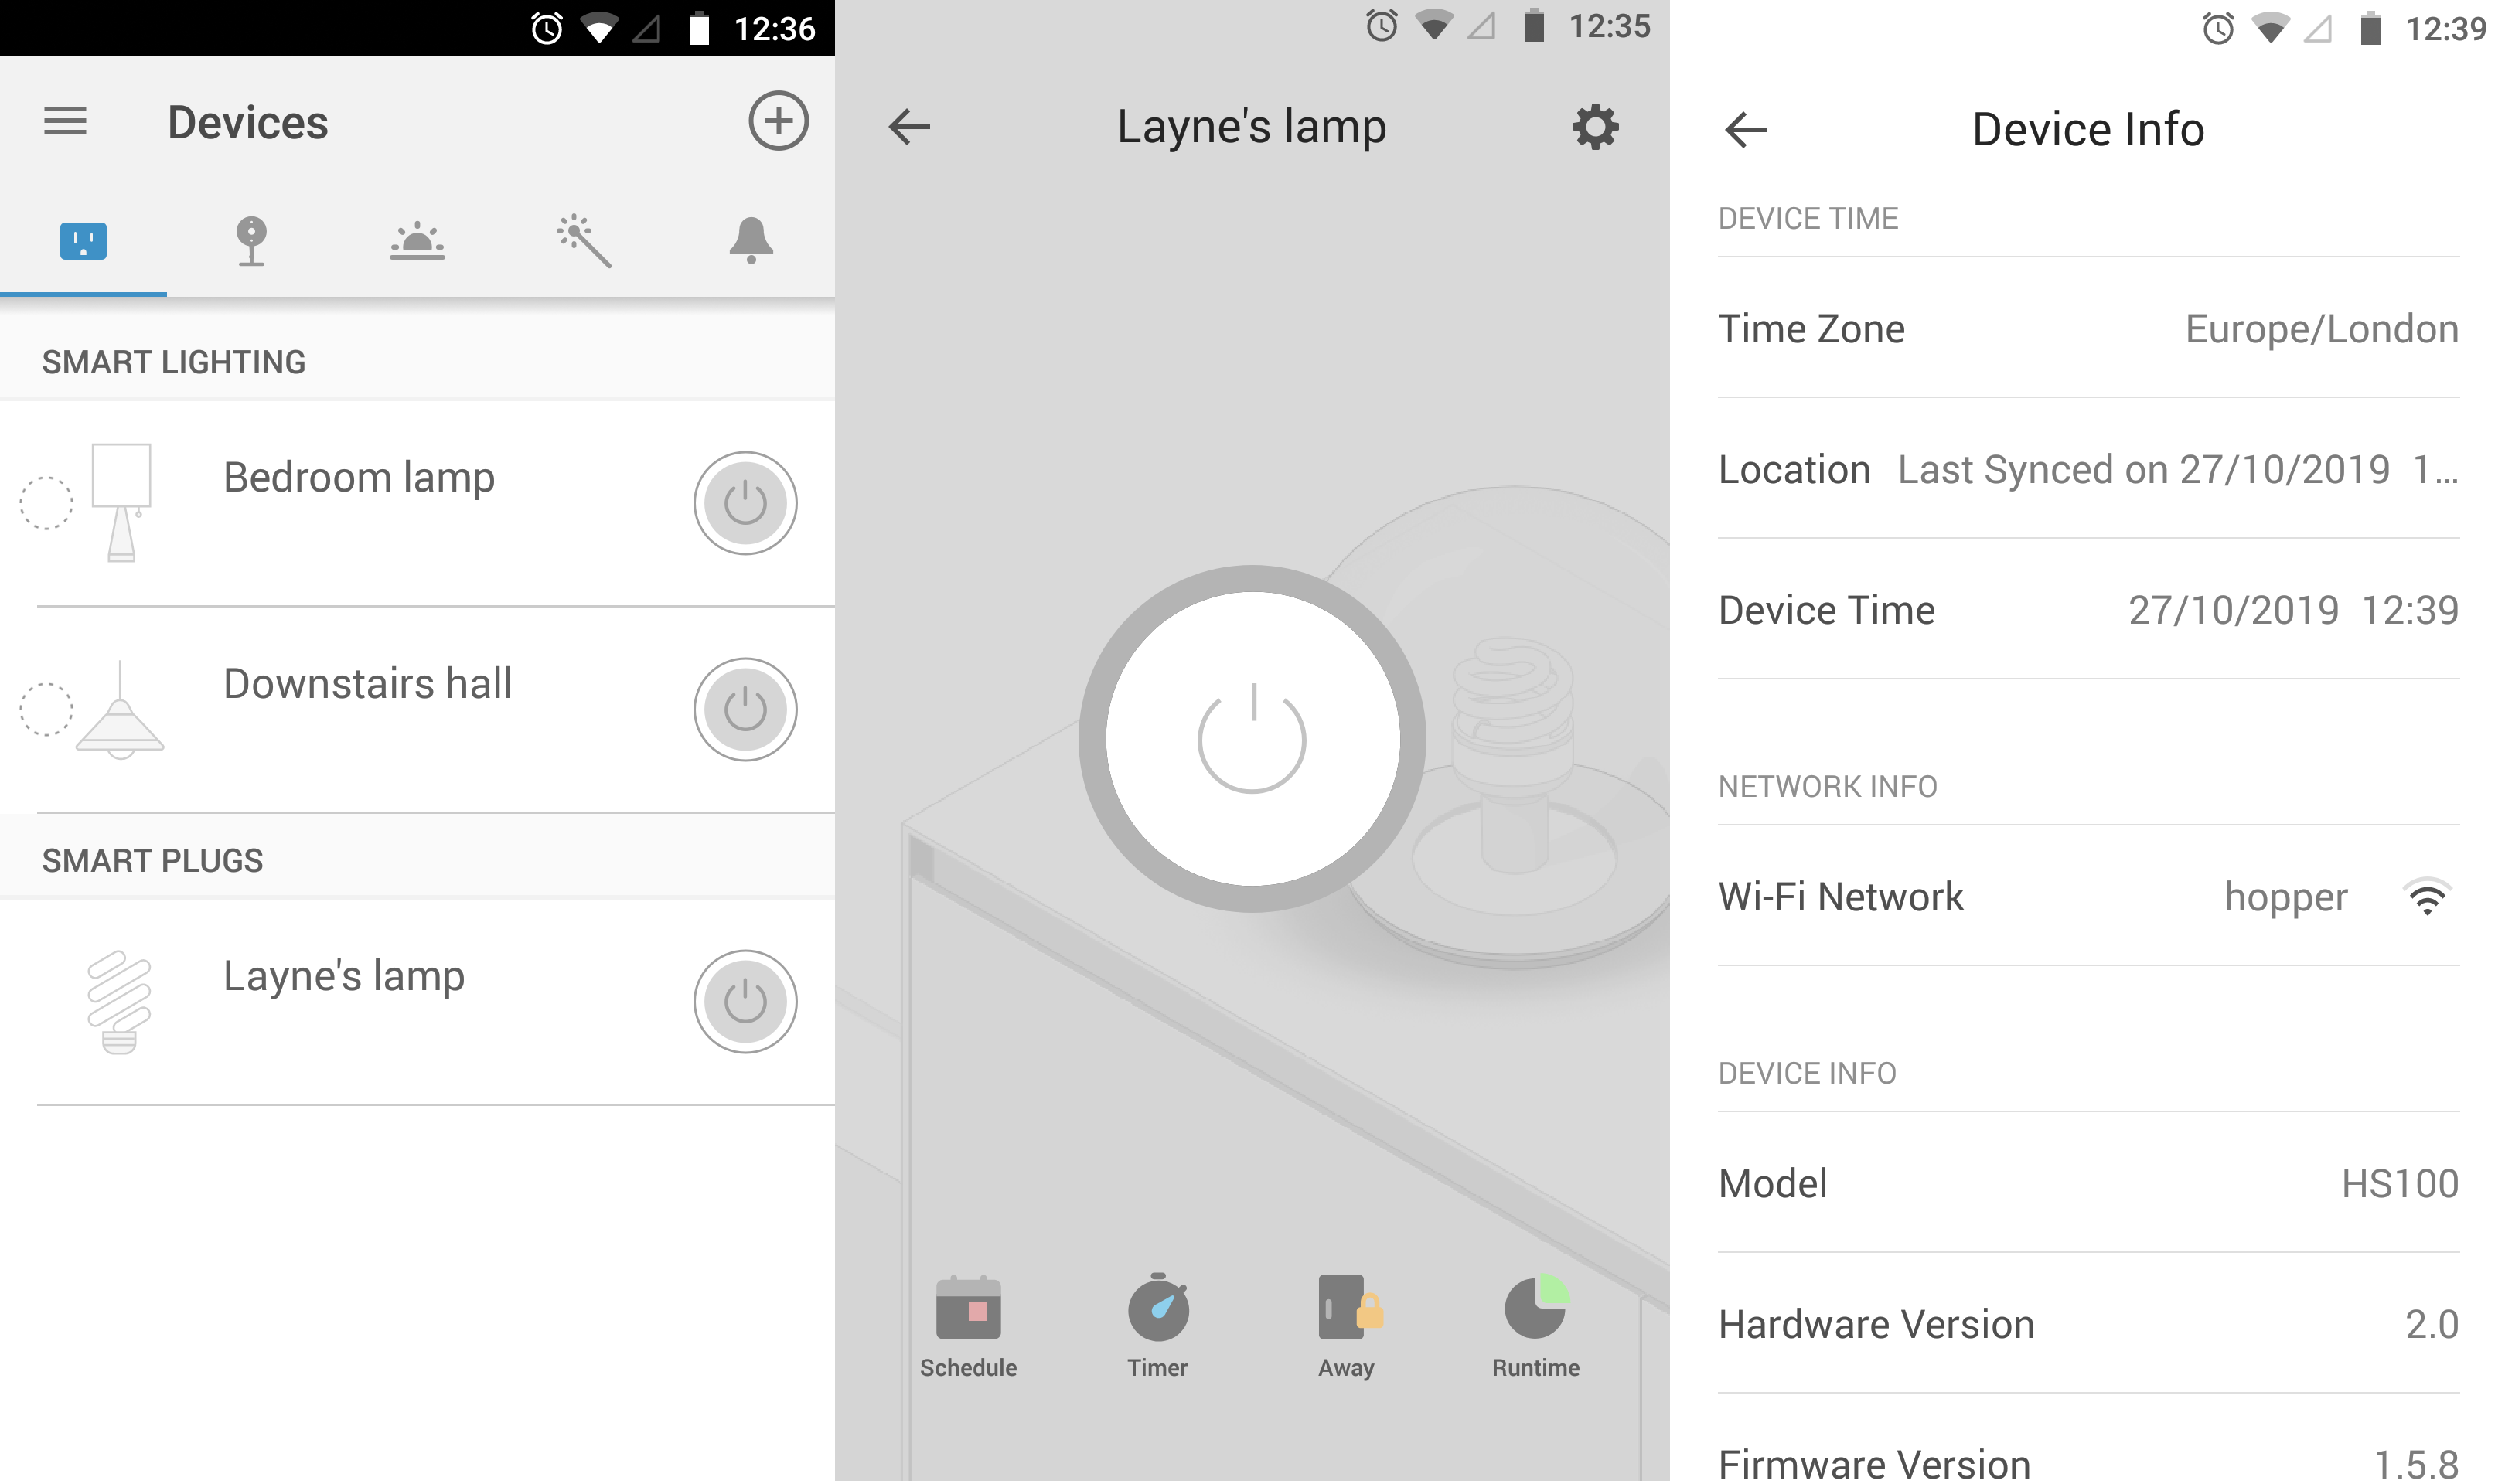 TP-Link Kasa app screenshots showing device configuration